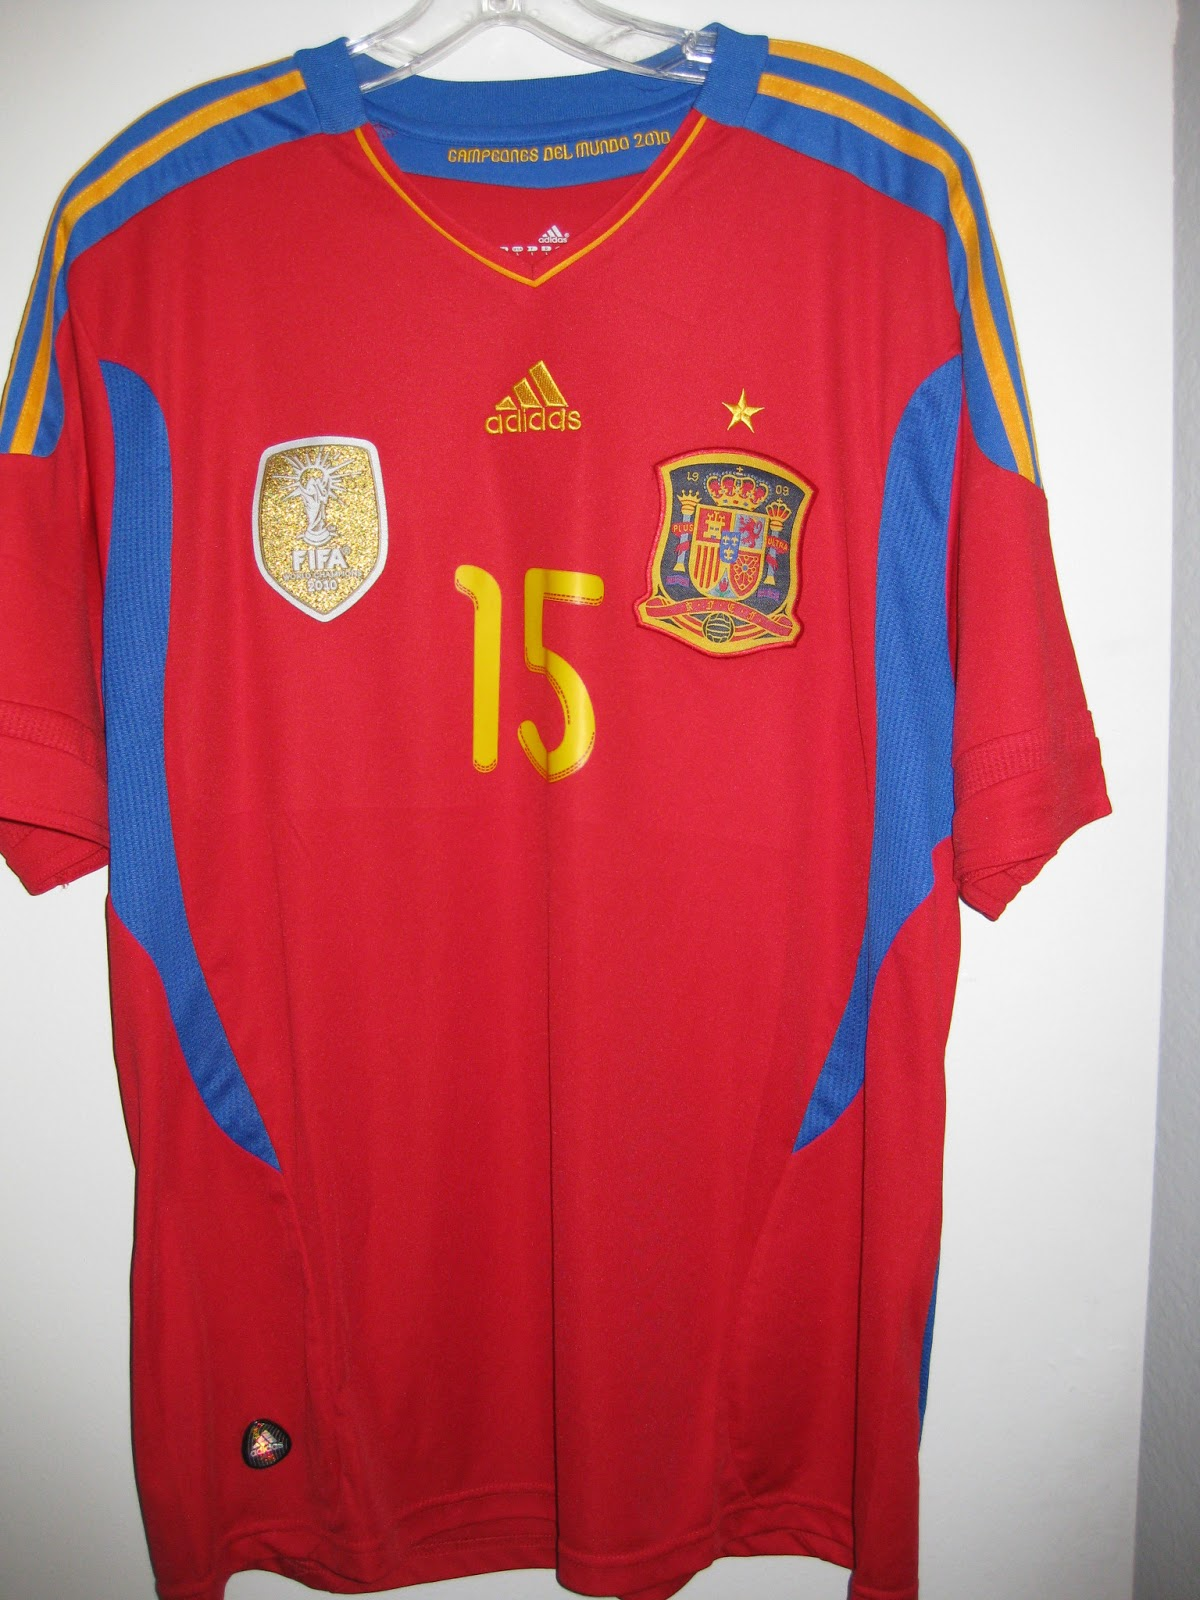 new arrival 12c8b cc25d Chris's Soccer Jersey Collection: 2011-12 Sergio Ramos Spain ...